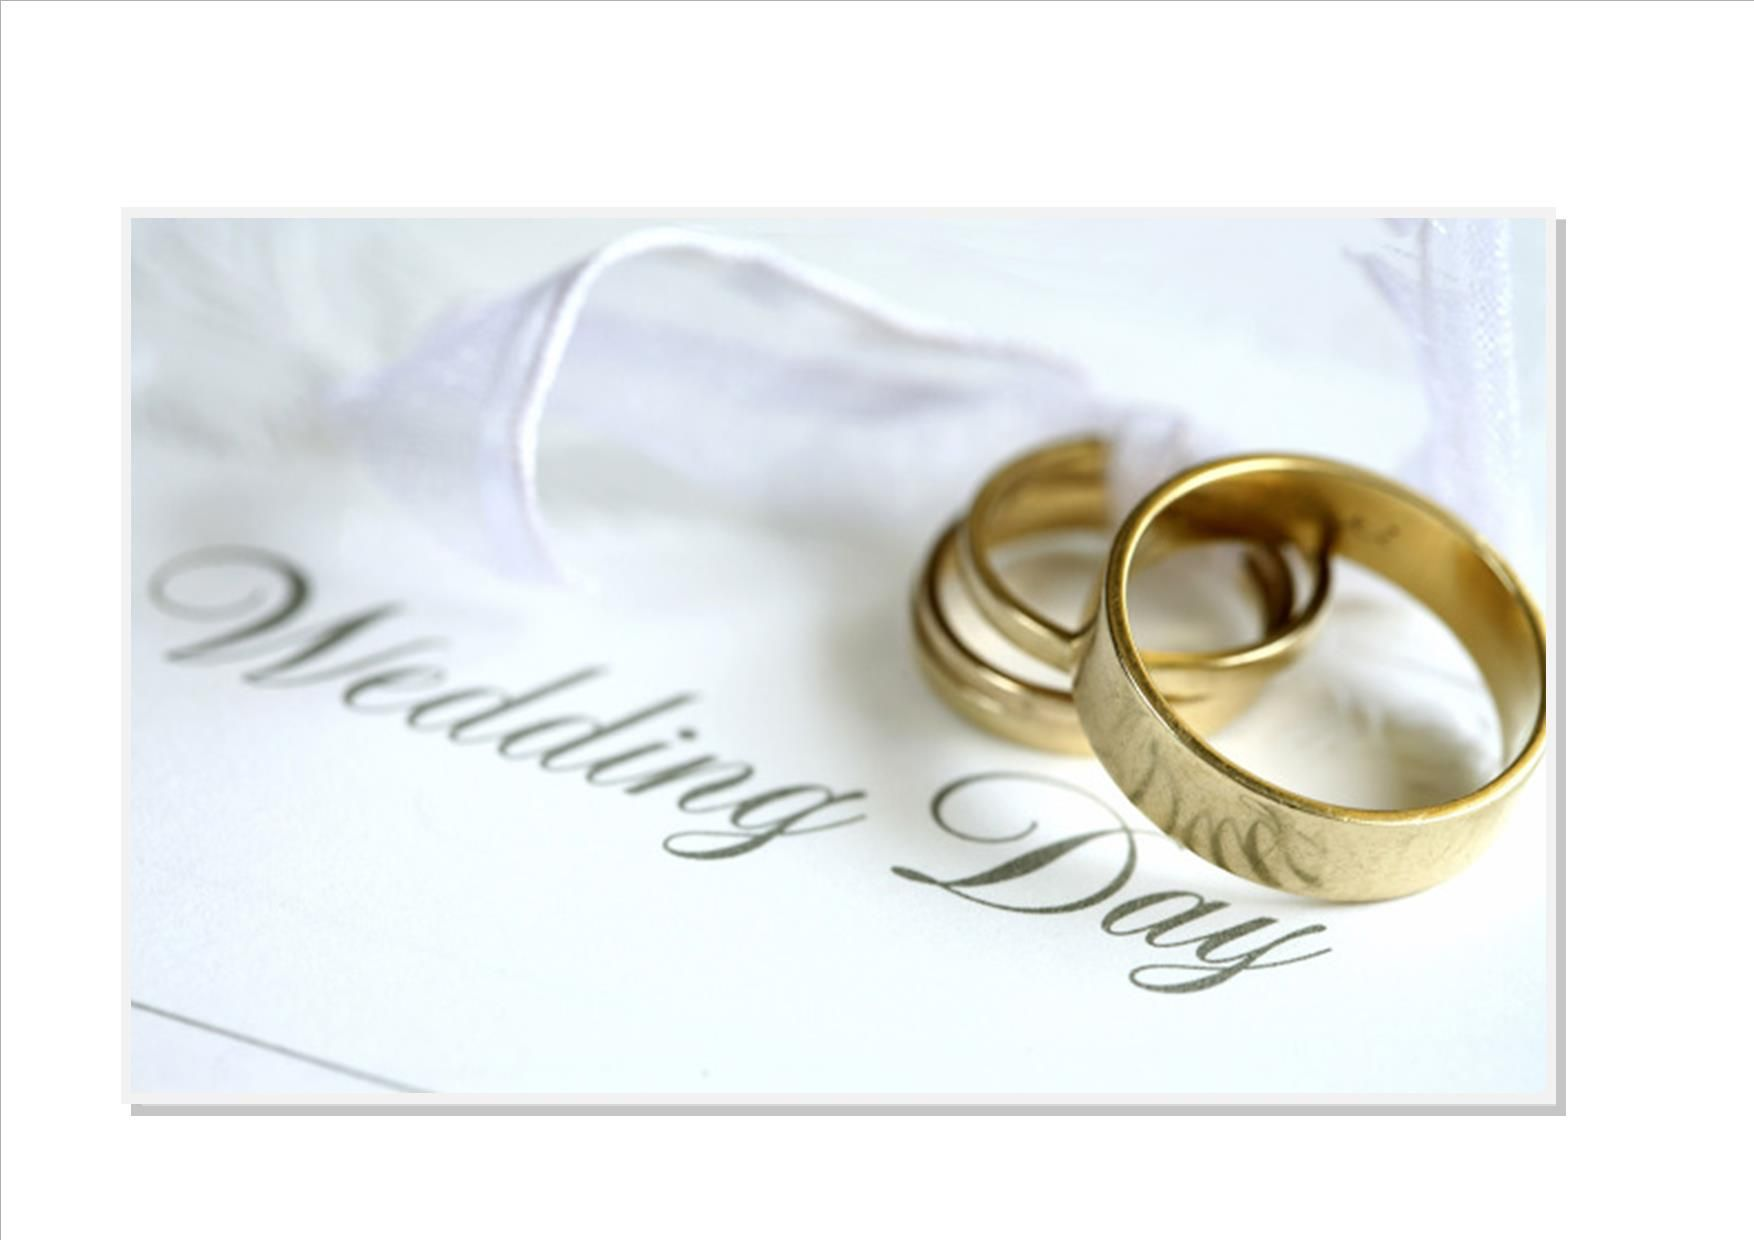 24 x Money Request Poem Cards 3 different poems Wedding day rings